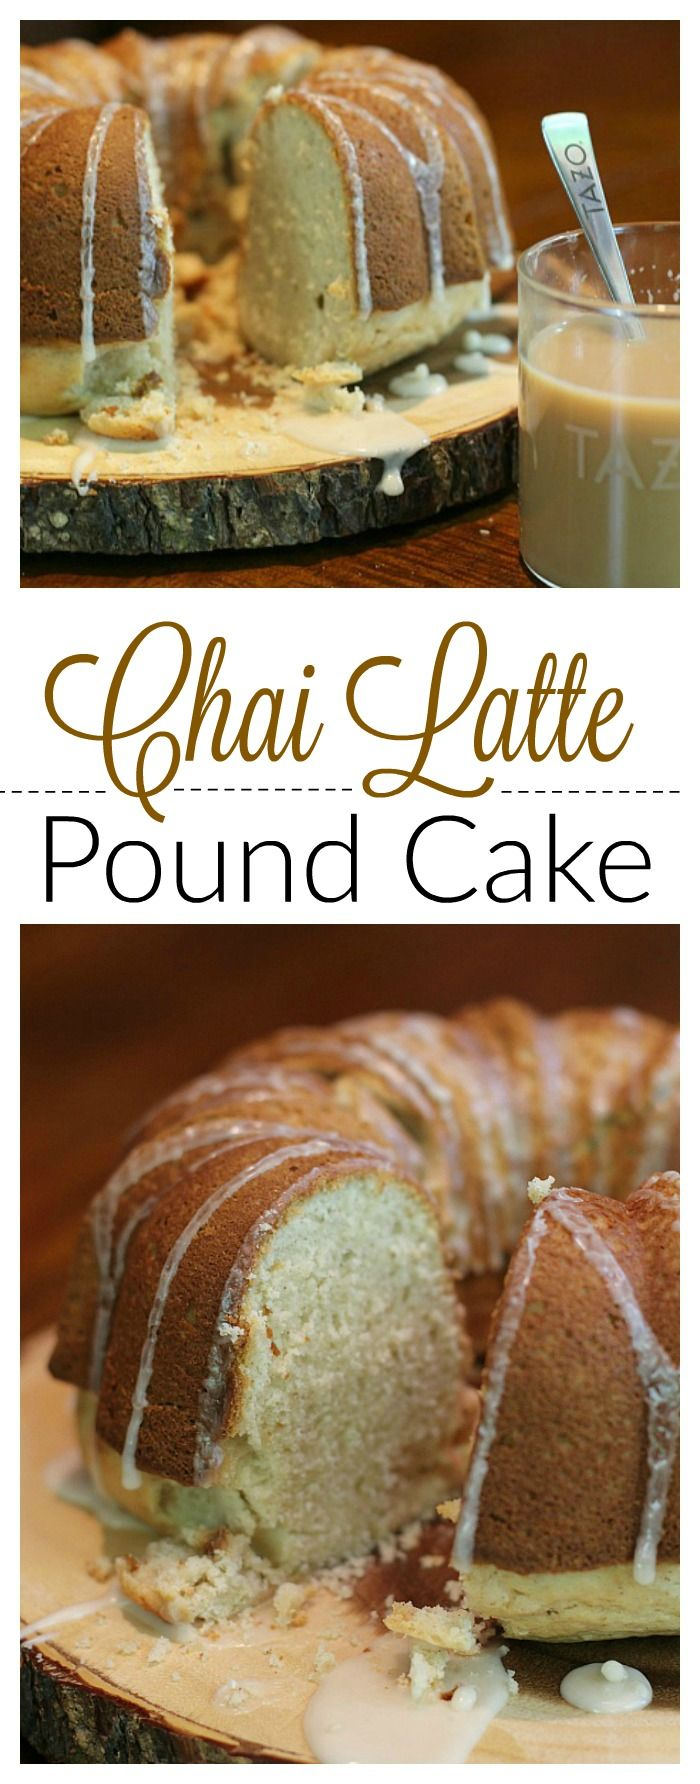 This Chai Latte Pound Cake pairs perfectly with a cup of #ChaiLatte made from…